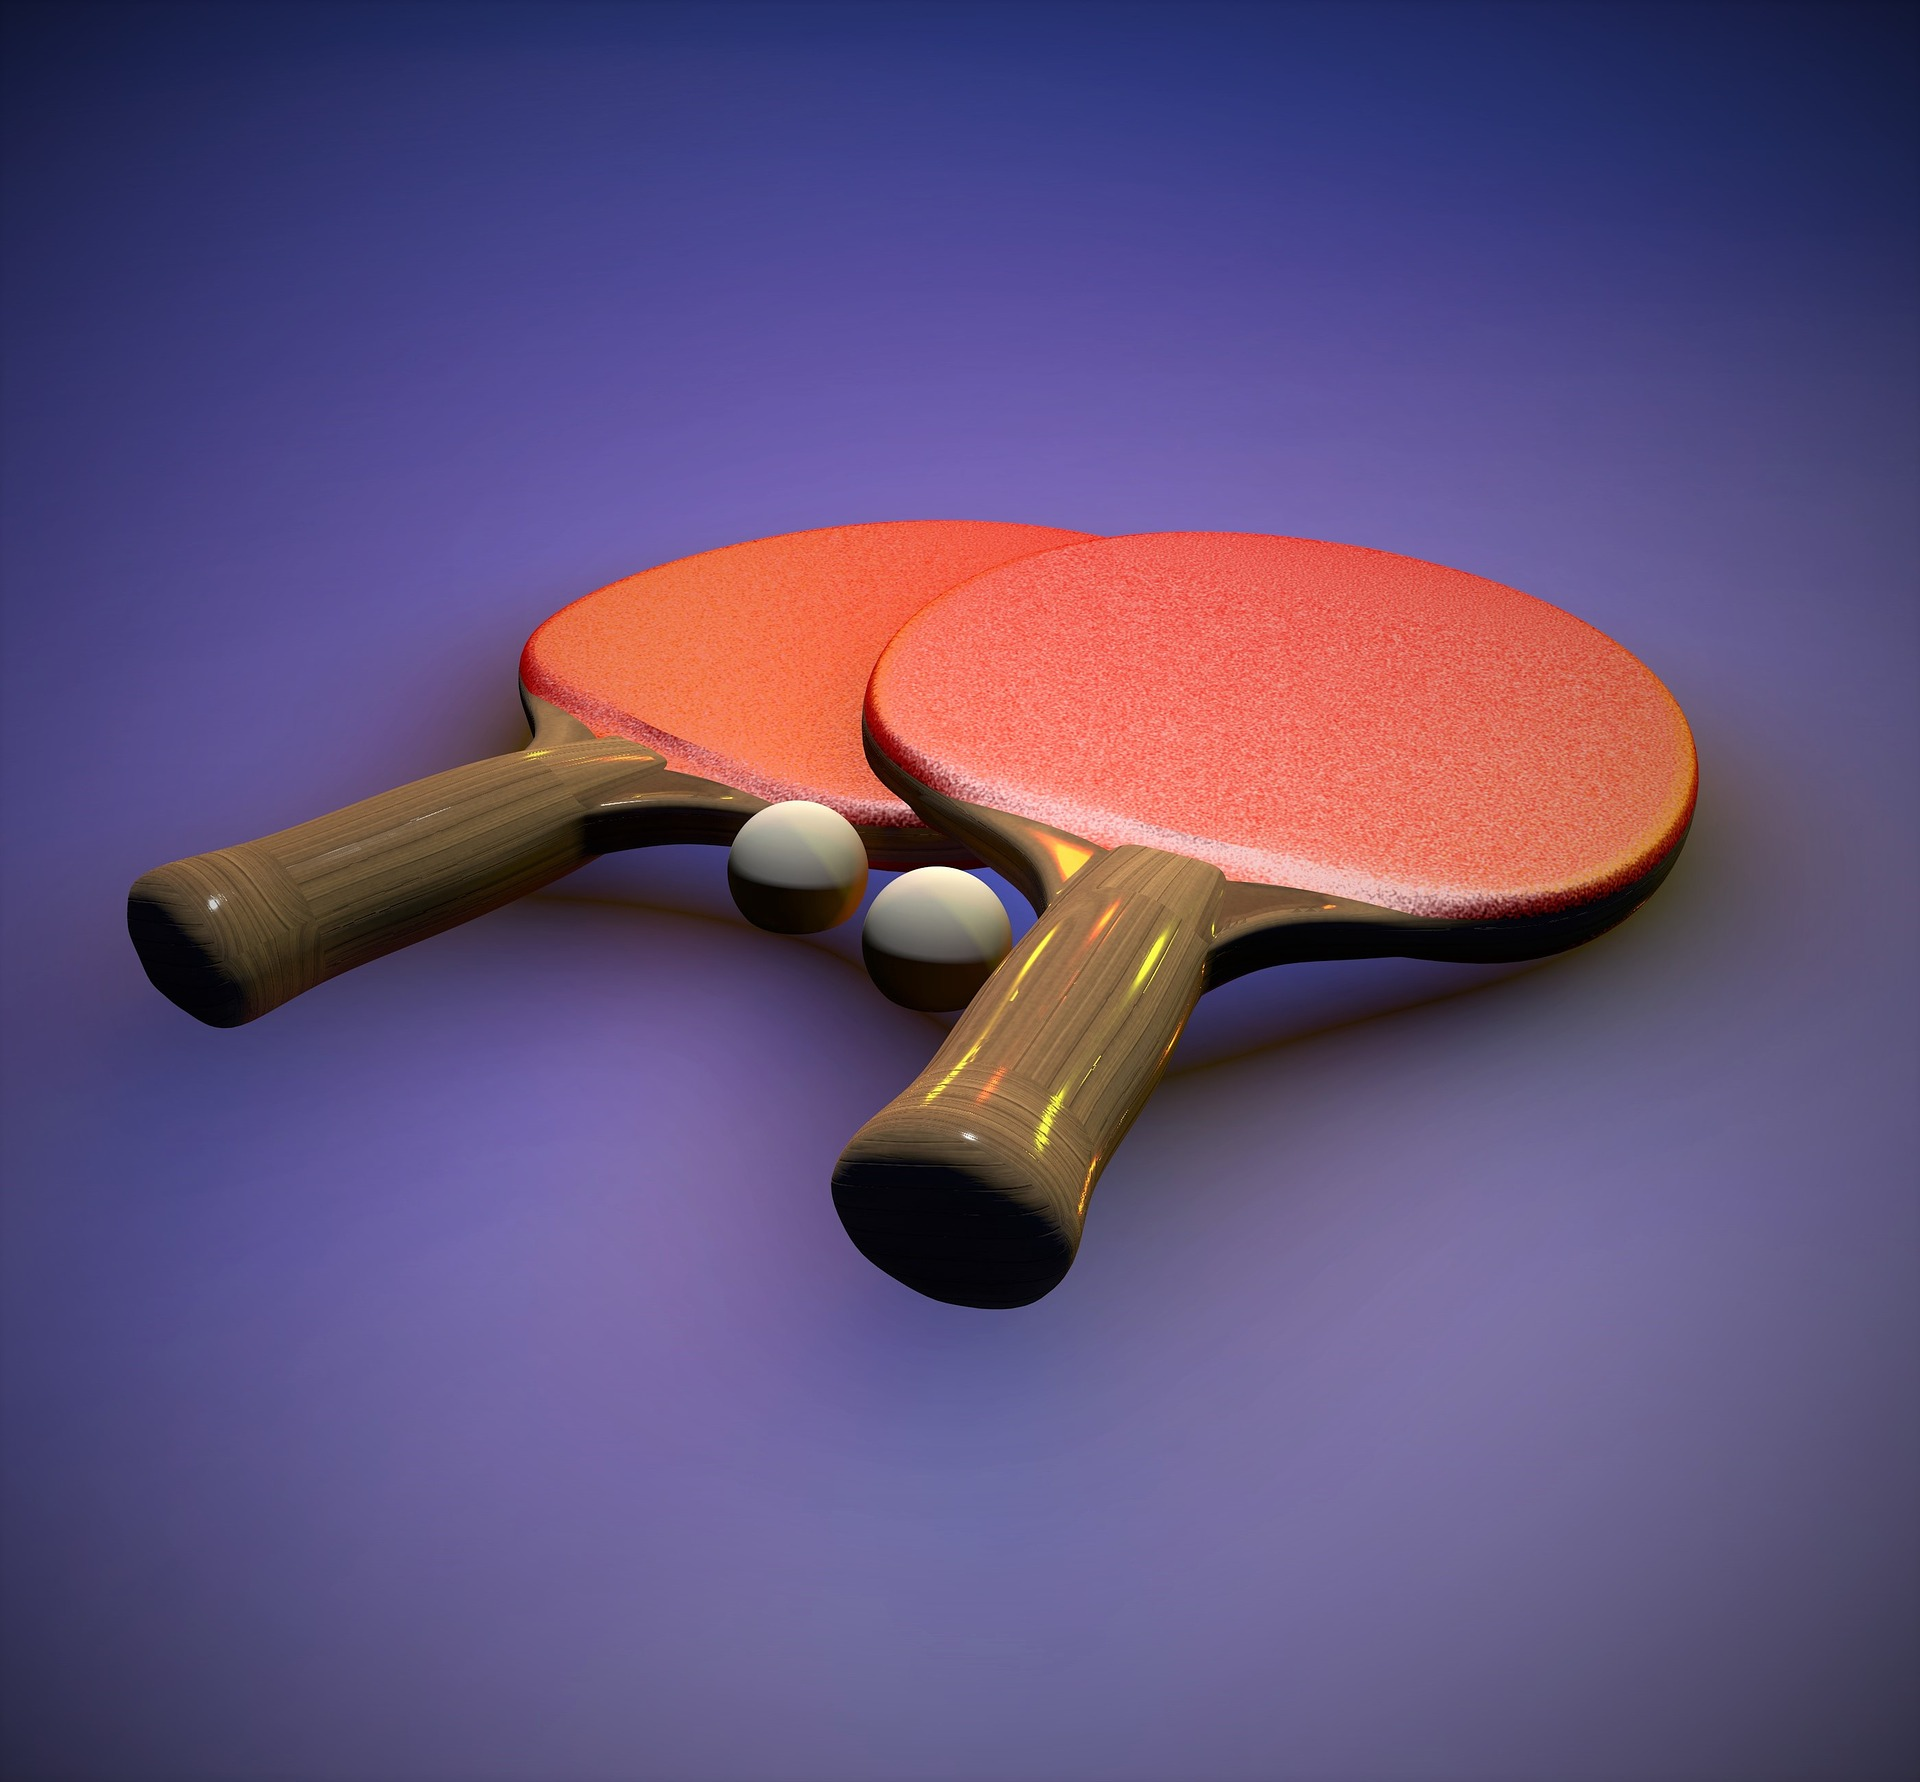 table-tennis-1807603_1920.jpg